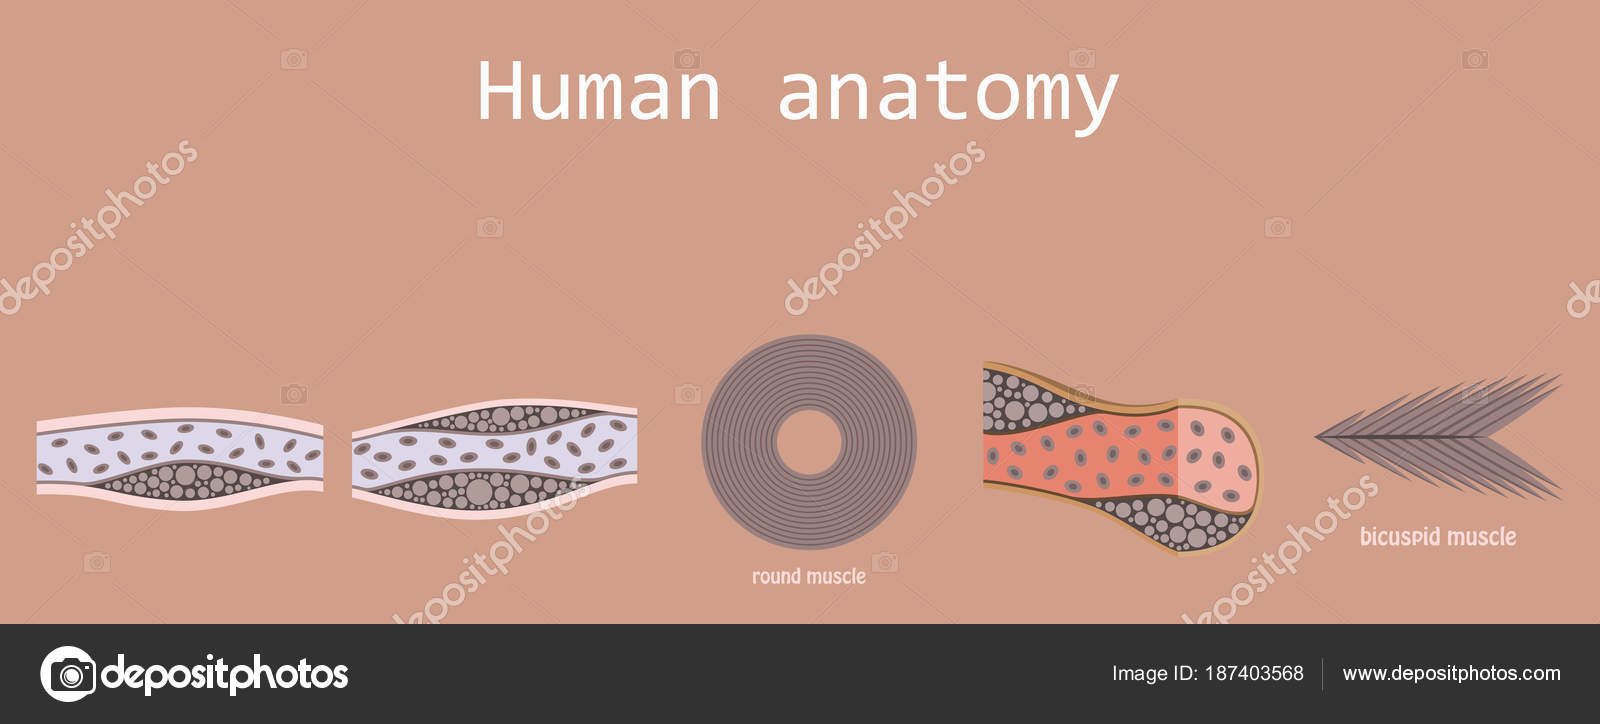 Types of muscle tissue of human body diagram including cardiac types of muscle tissue of human body diagram including cardiac skeletal smooth with example of heart ccuart Images